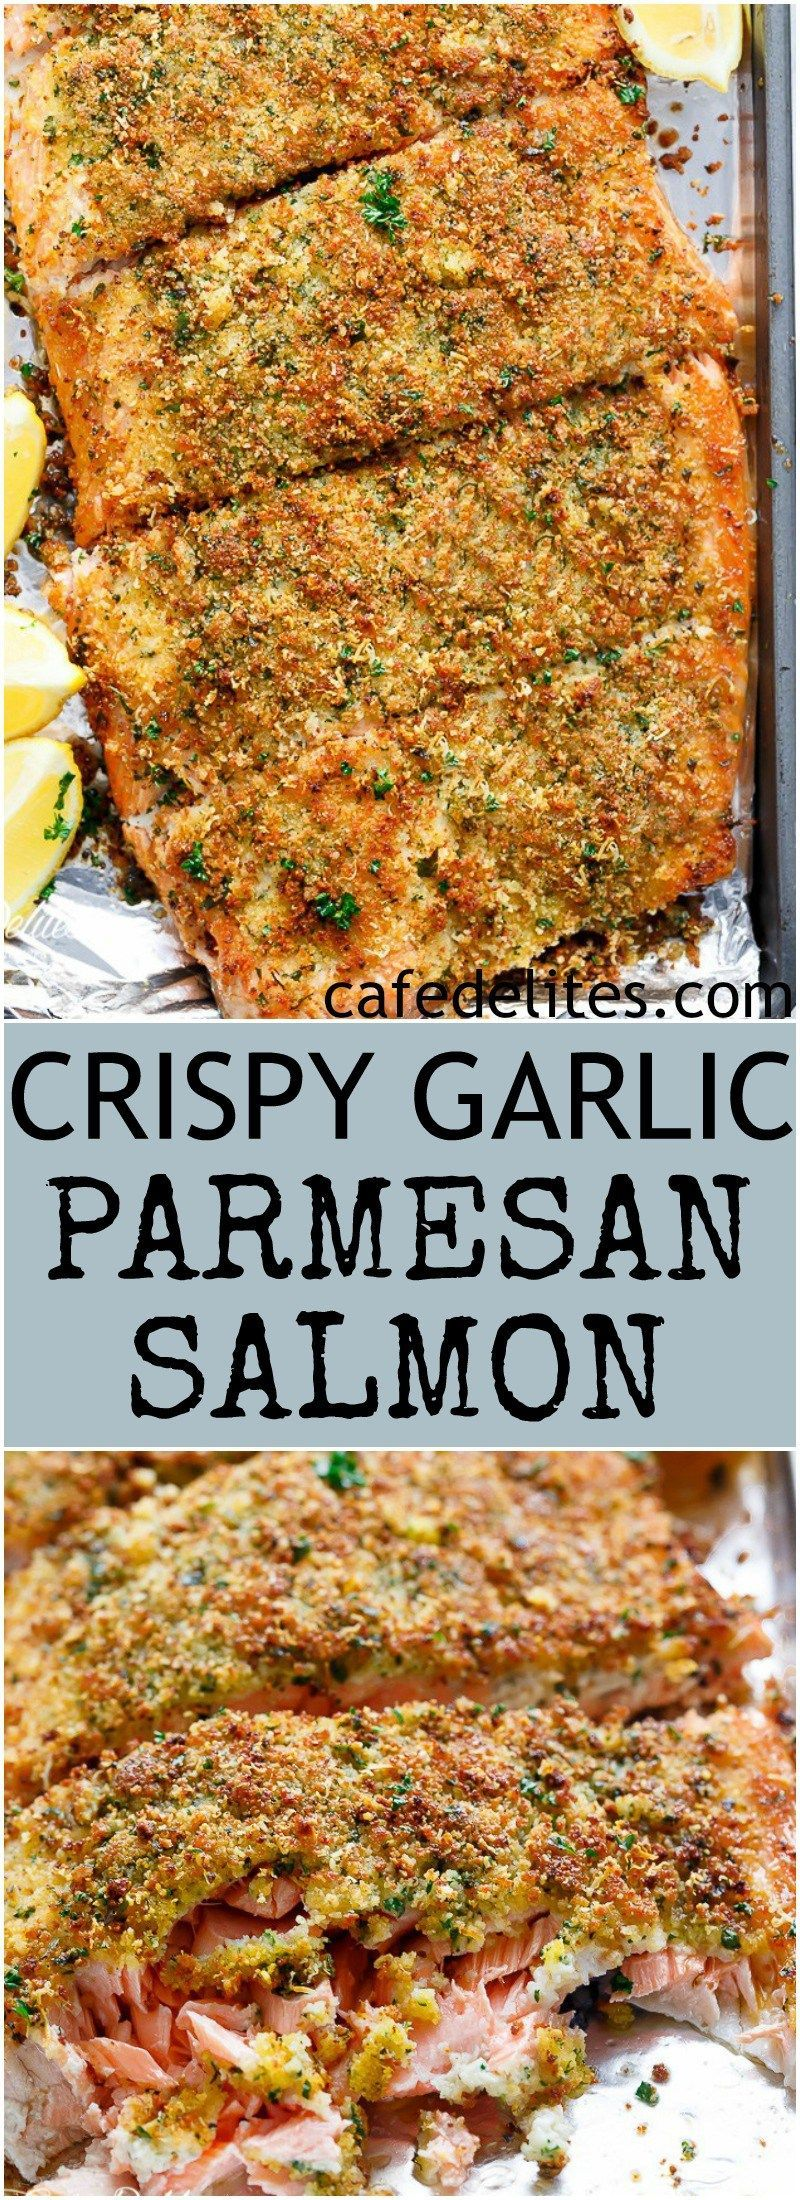 Crispy Garlic Parmesan Salmon is ready and 0n your table in less than 15 minutes... -  Crispy Garli